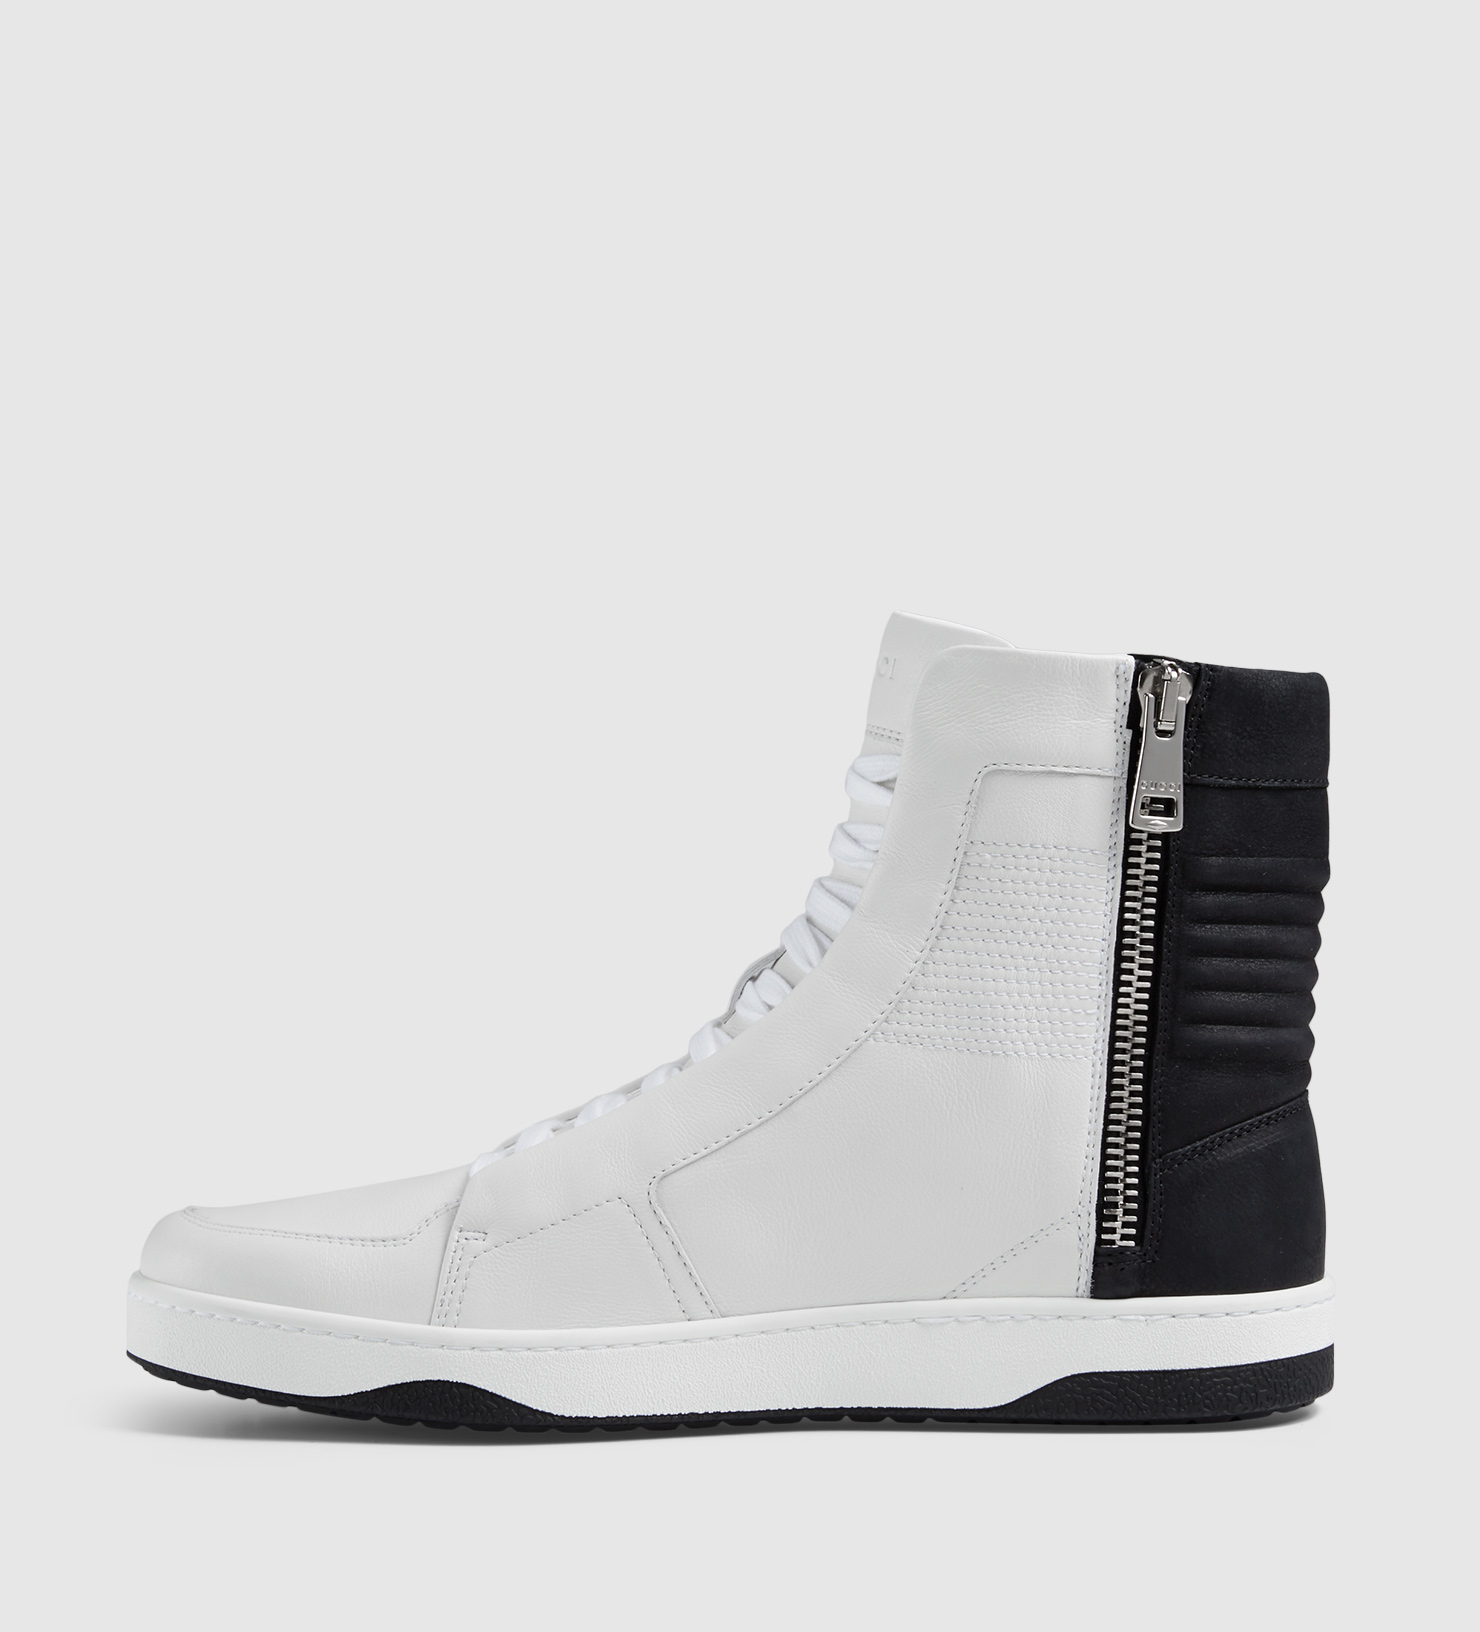 gucci leather high top sneaker with zippers in black for men lyst. Black Bedroom Furniture Sets. Home Design Ideas